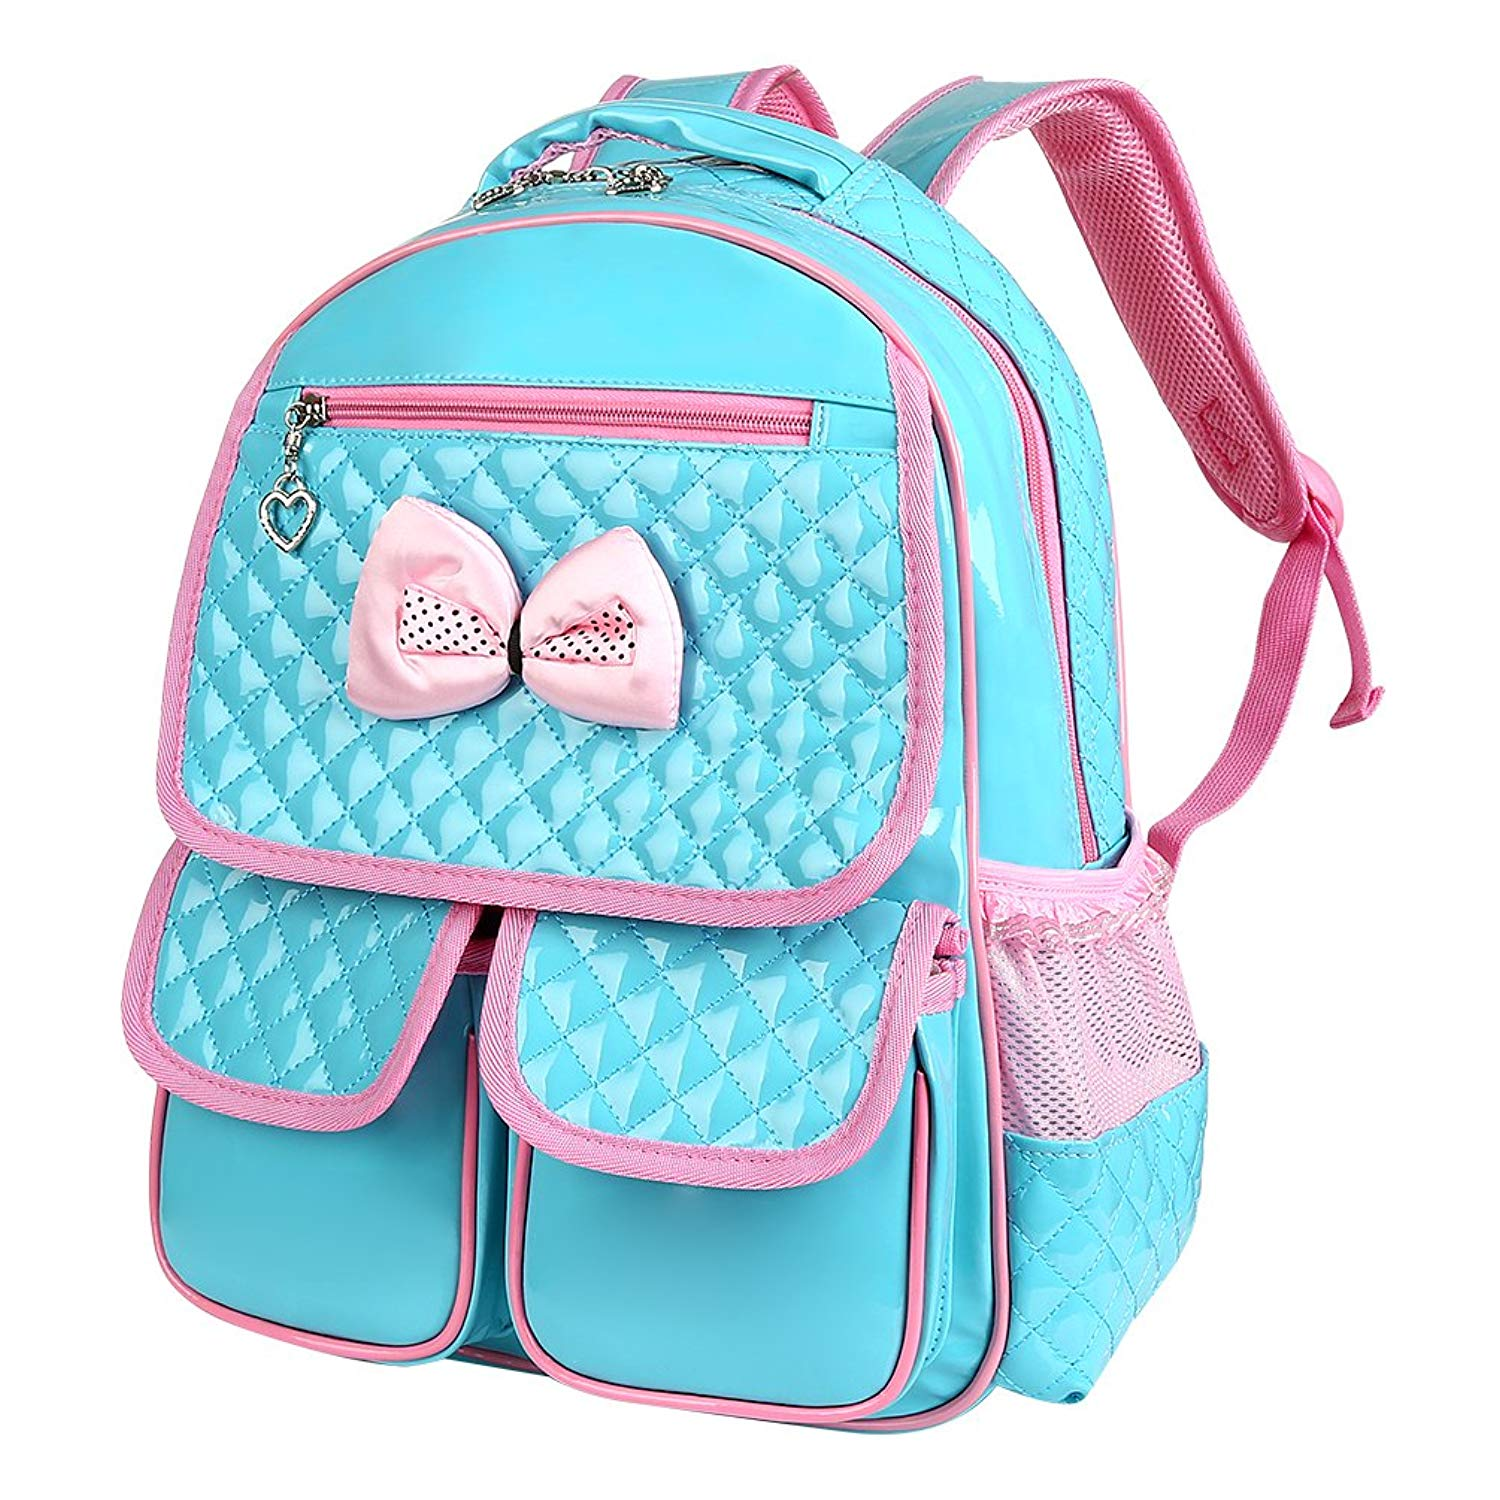 Vbiger Casual School Bag Children School Kids Backpacks for Girls